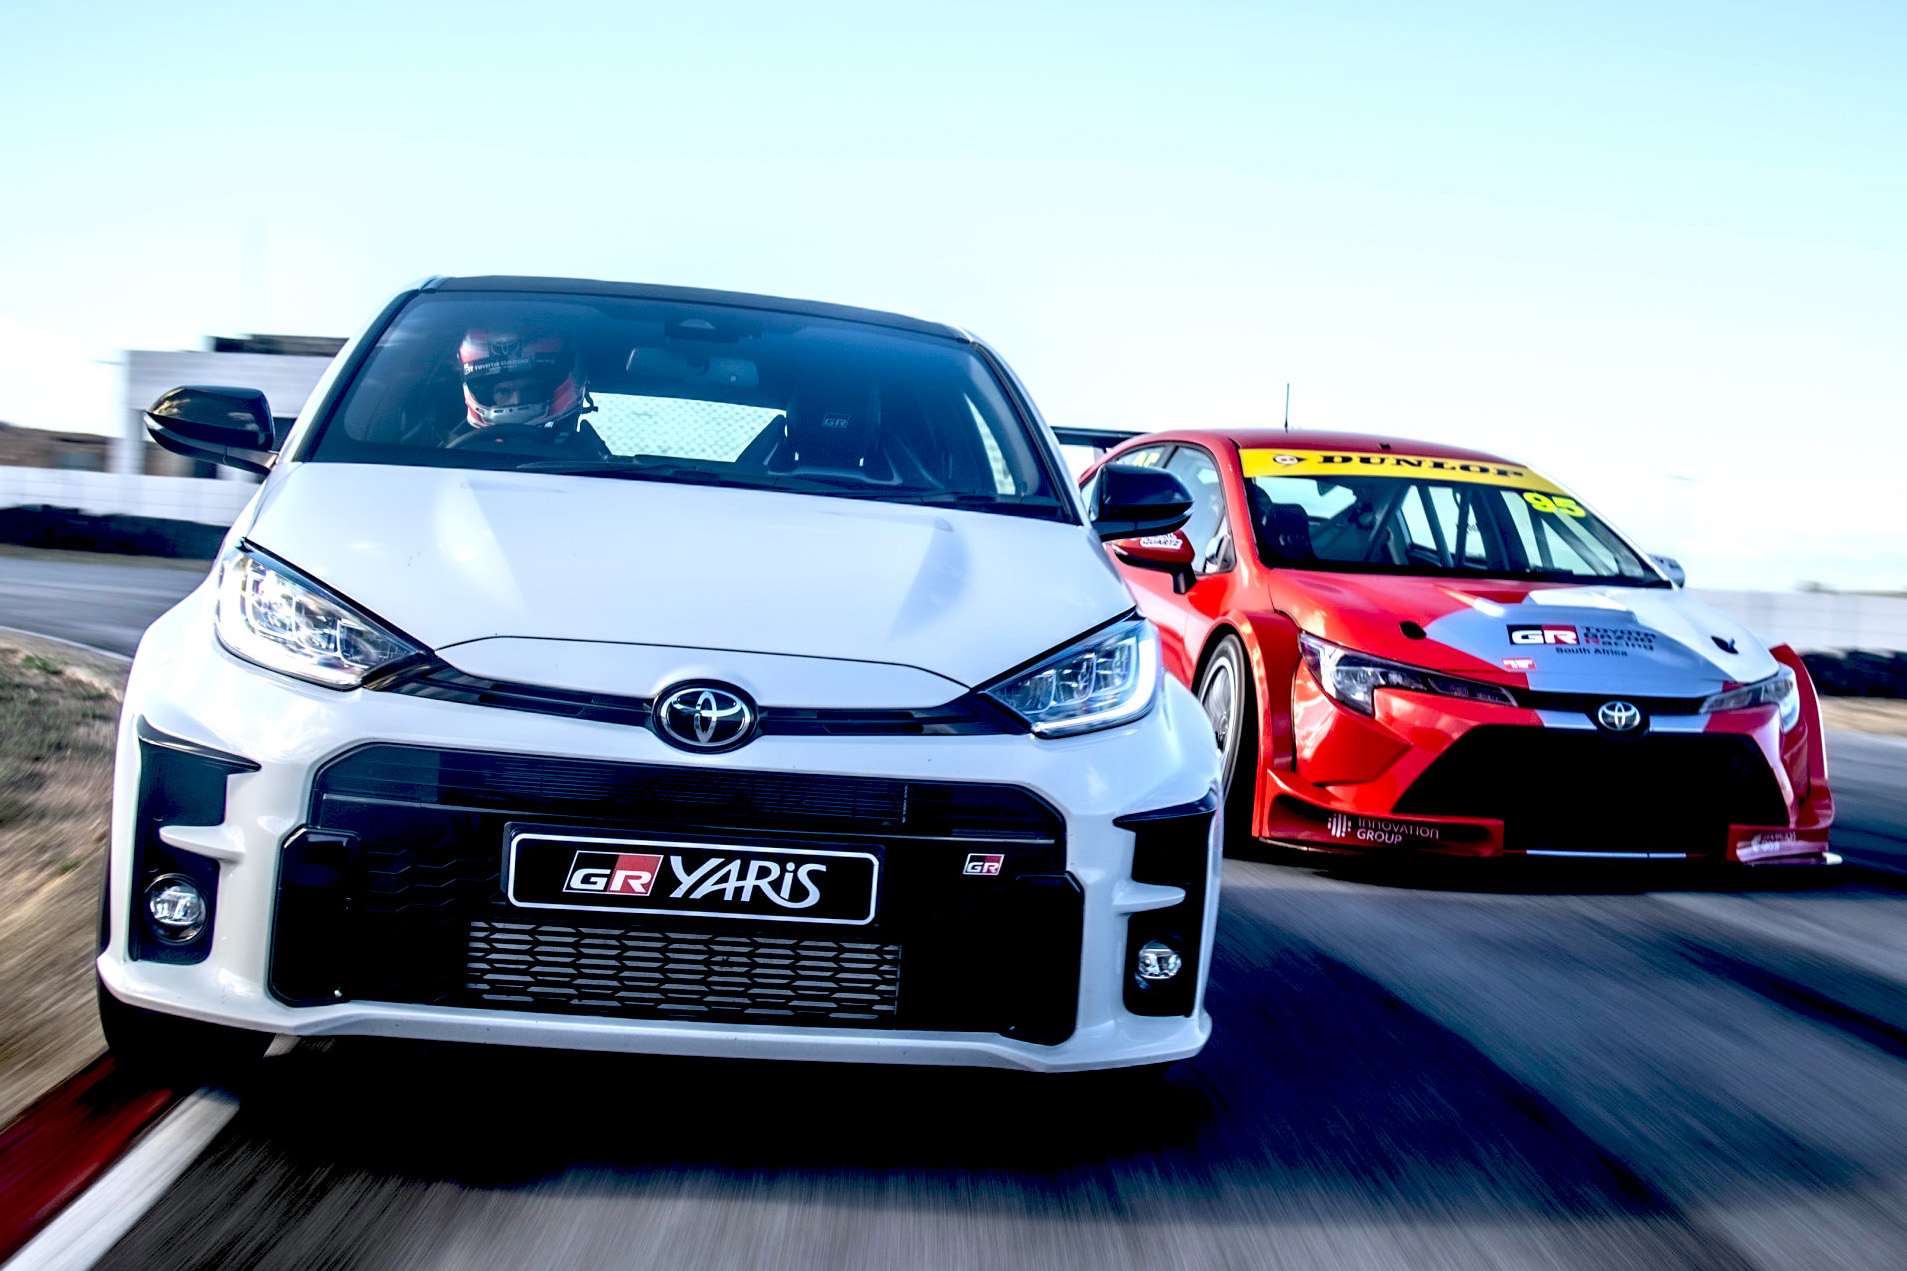 HOLD ON TO YOUR HATS — THE GAZOO RACING YARIS IS COMING!